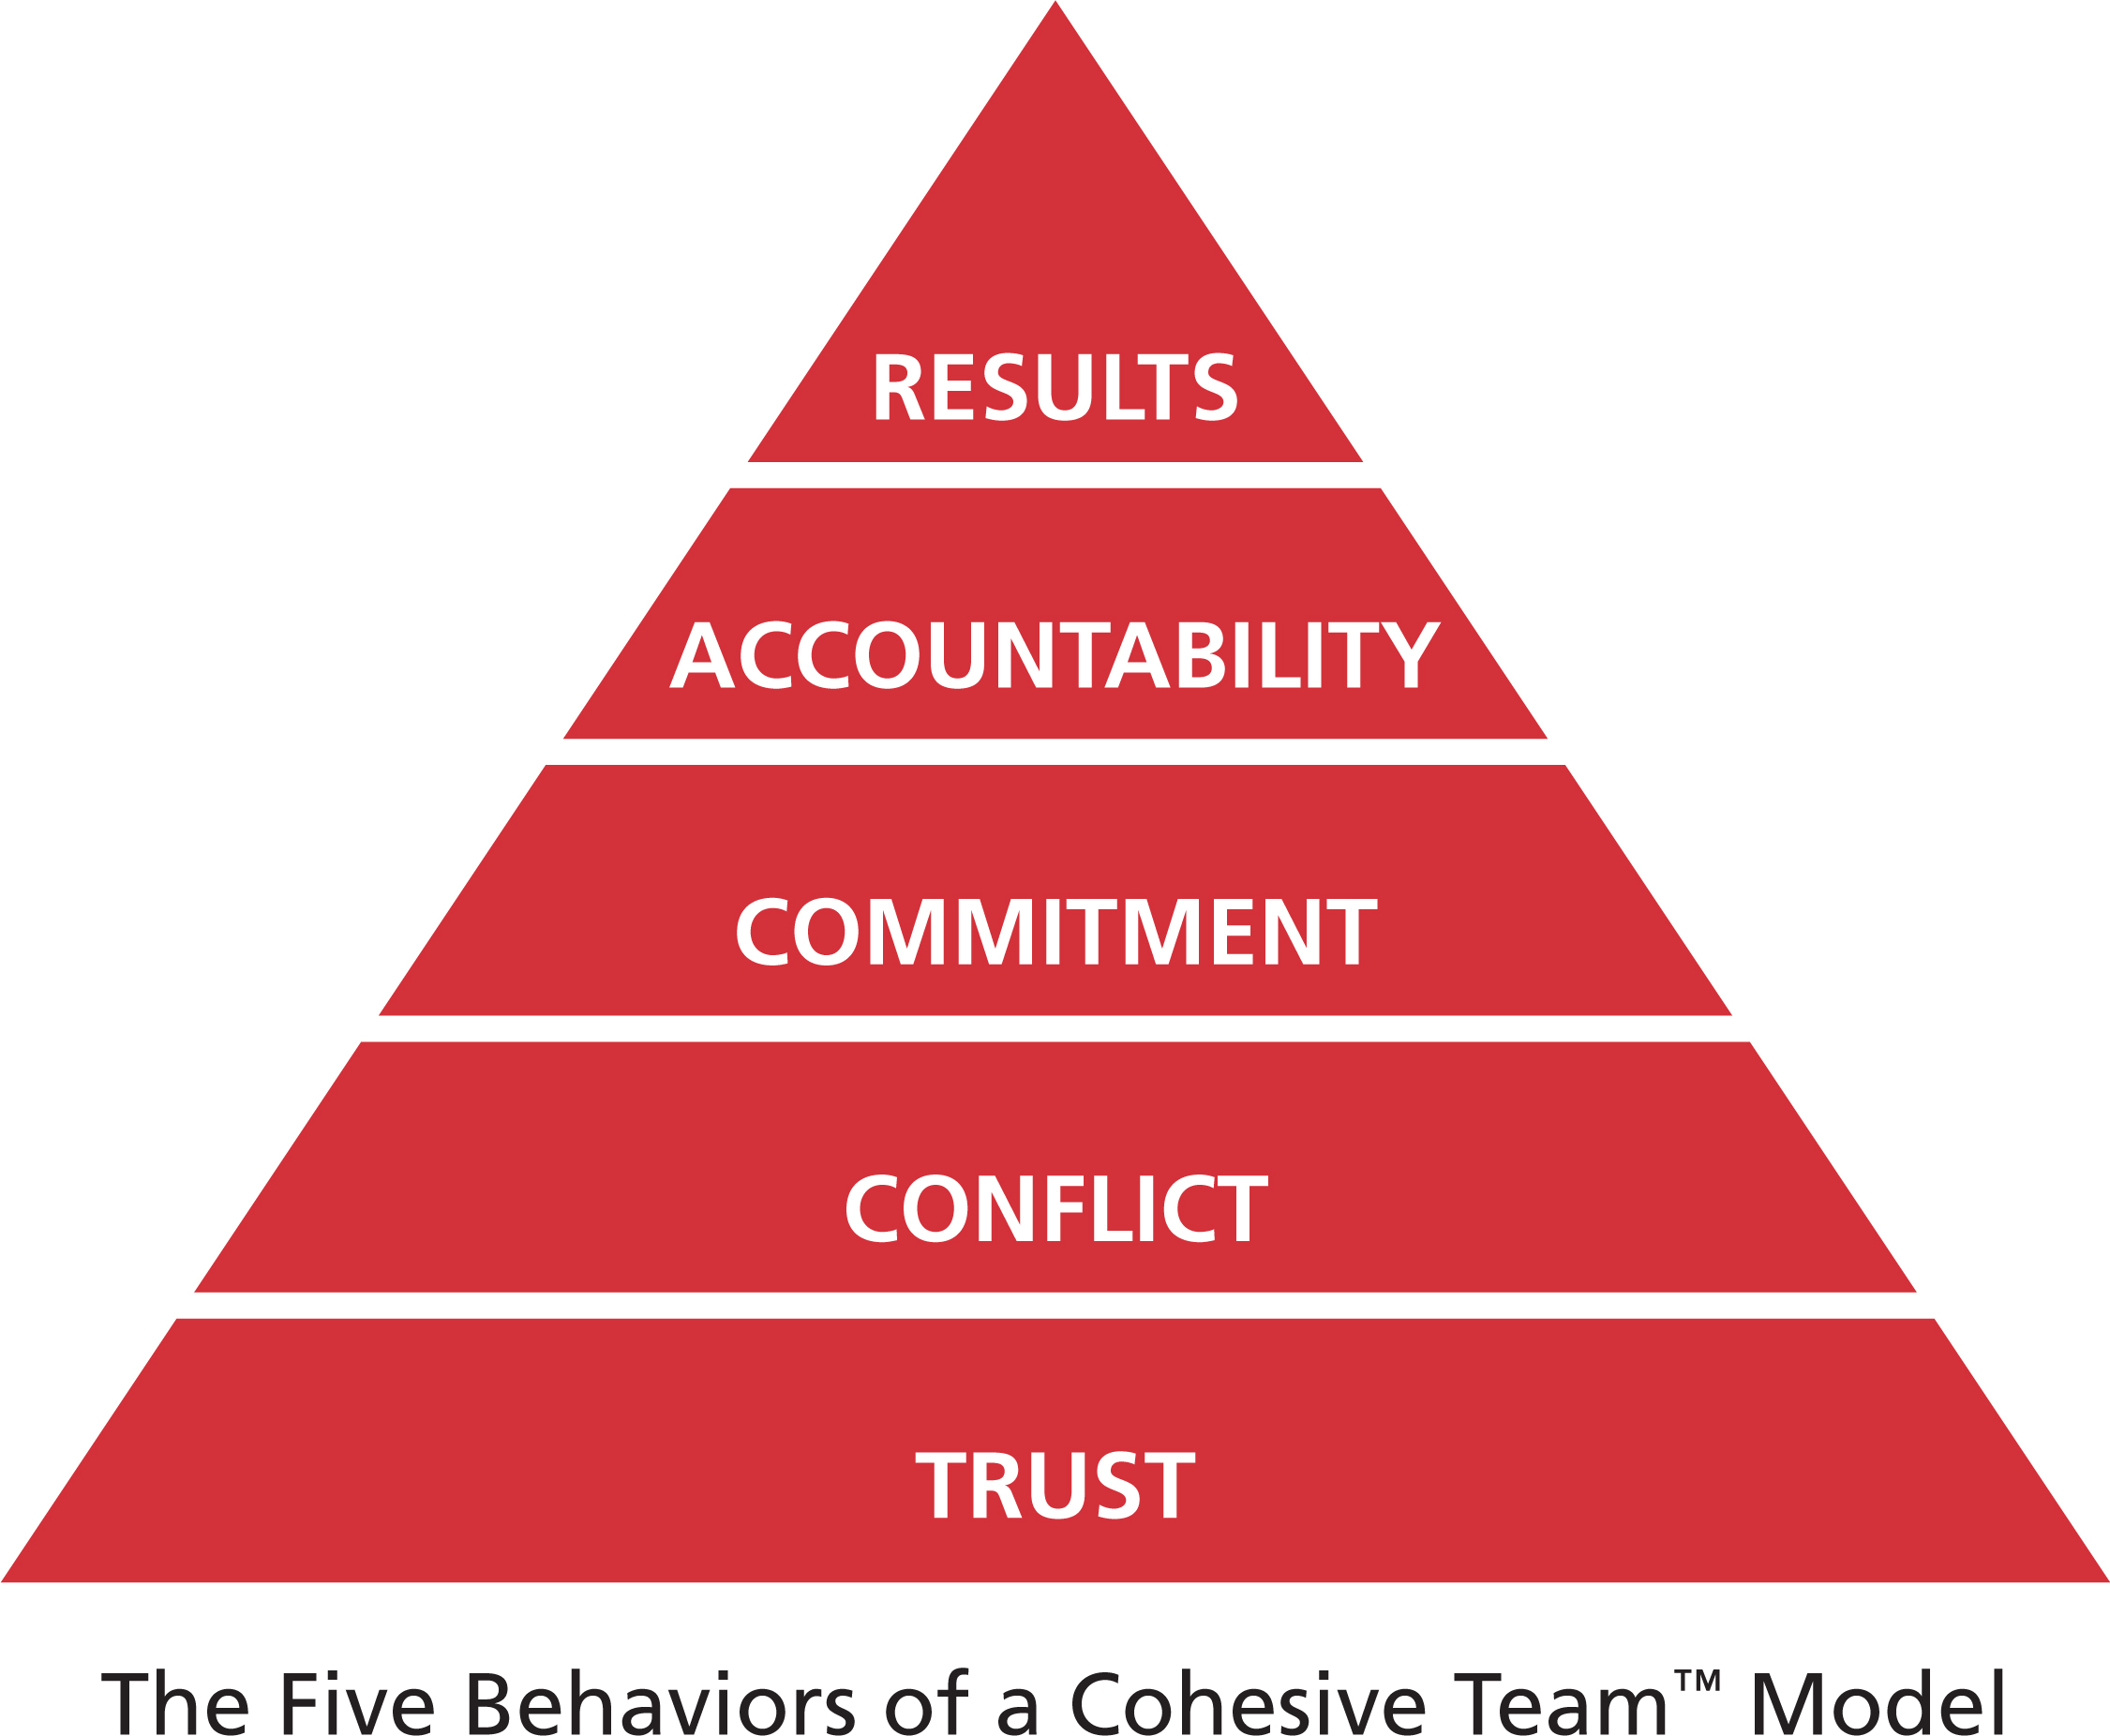 5Behaviors-model.jpg